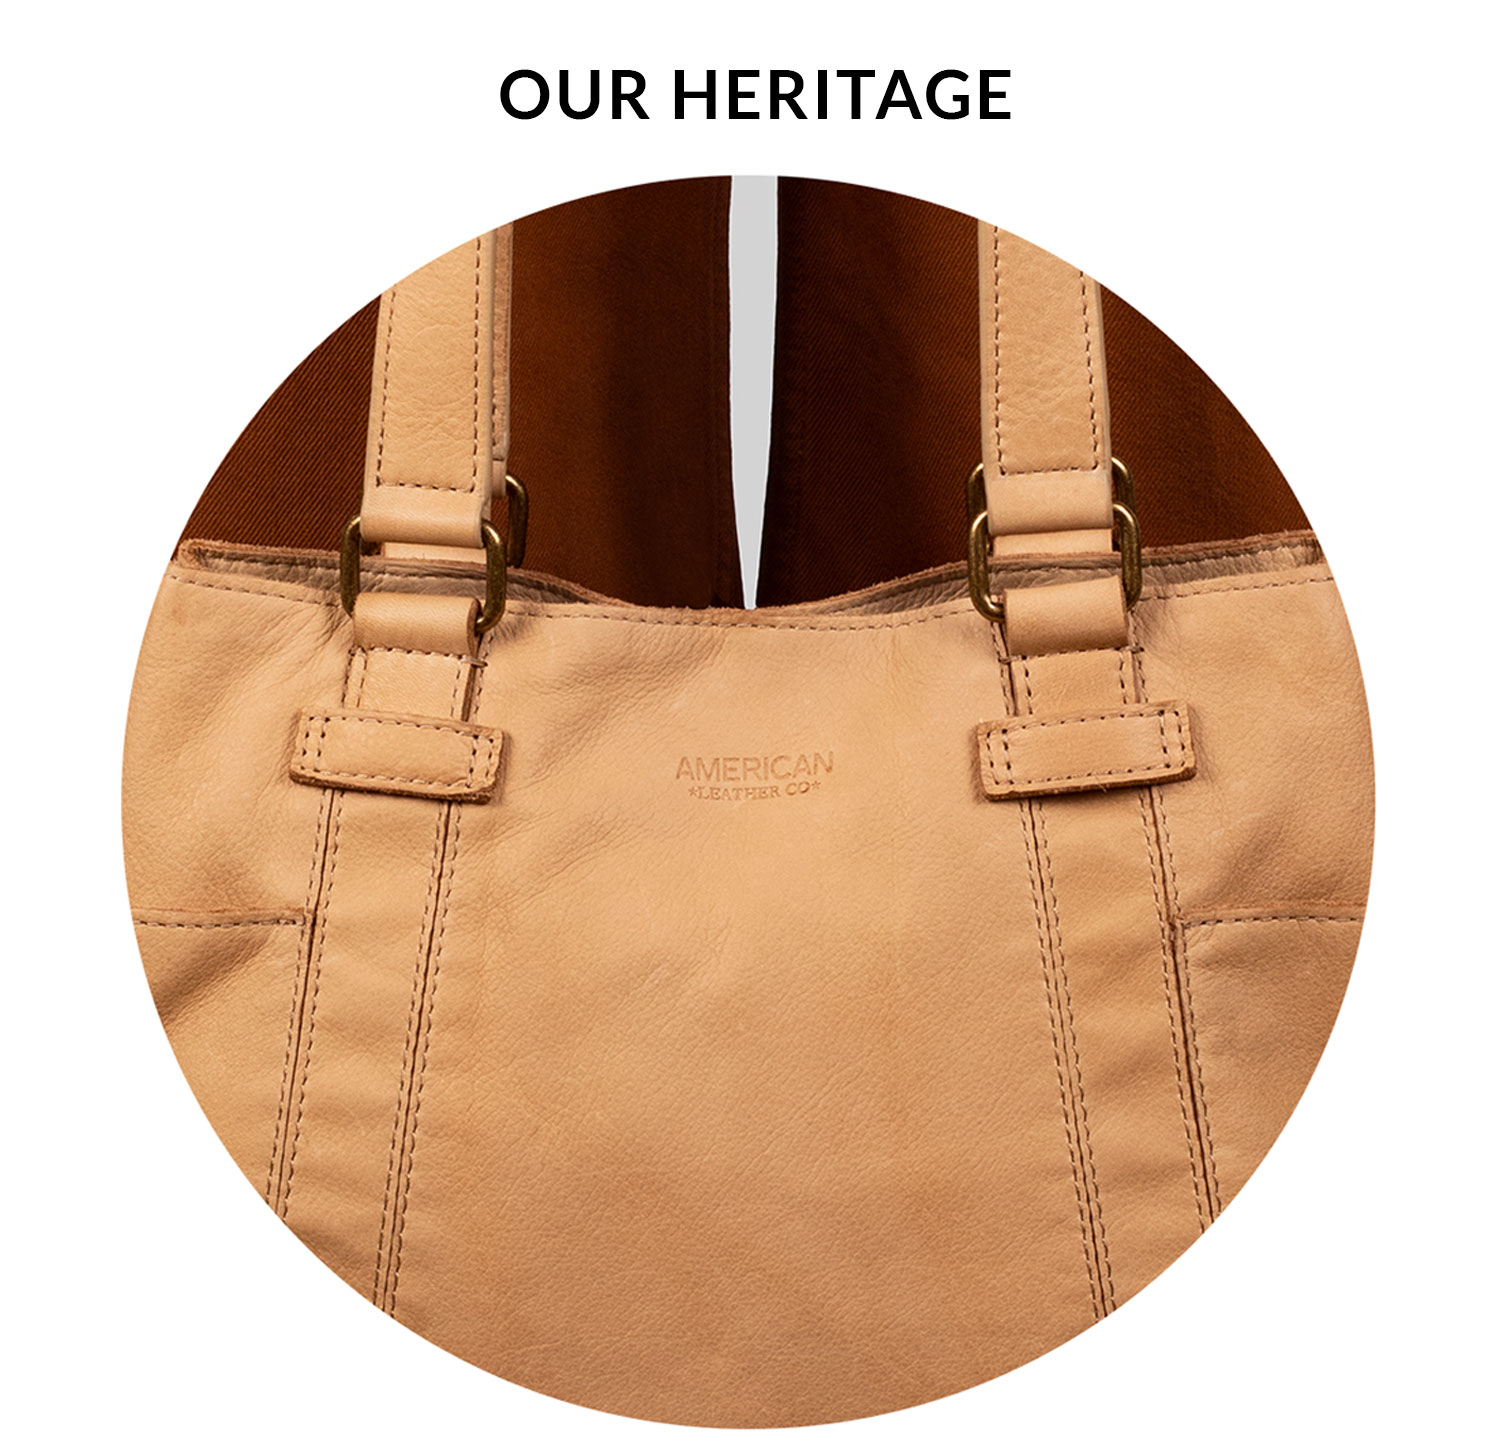 https://americanleatherco.com/our-heritage